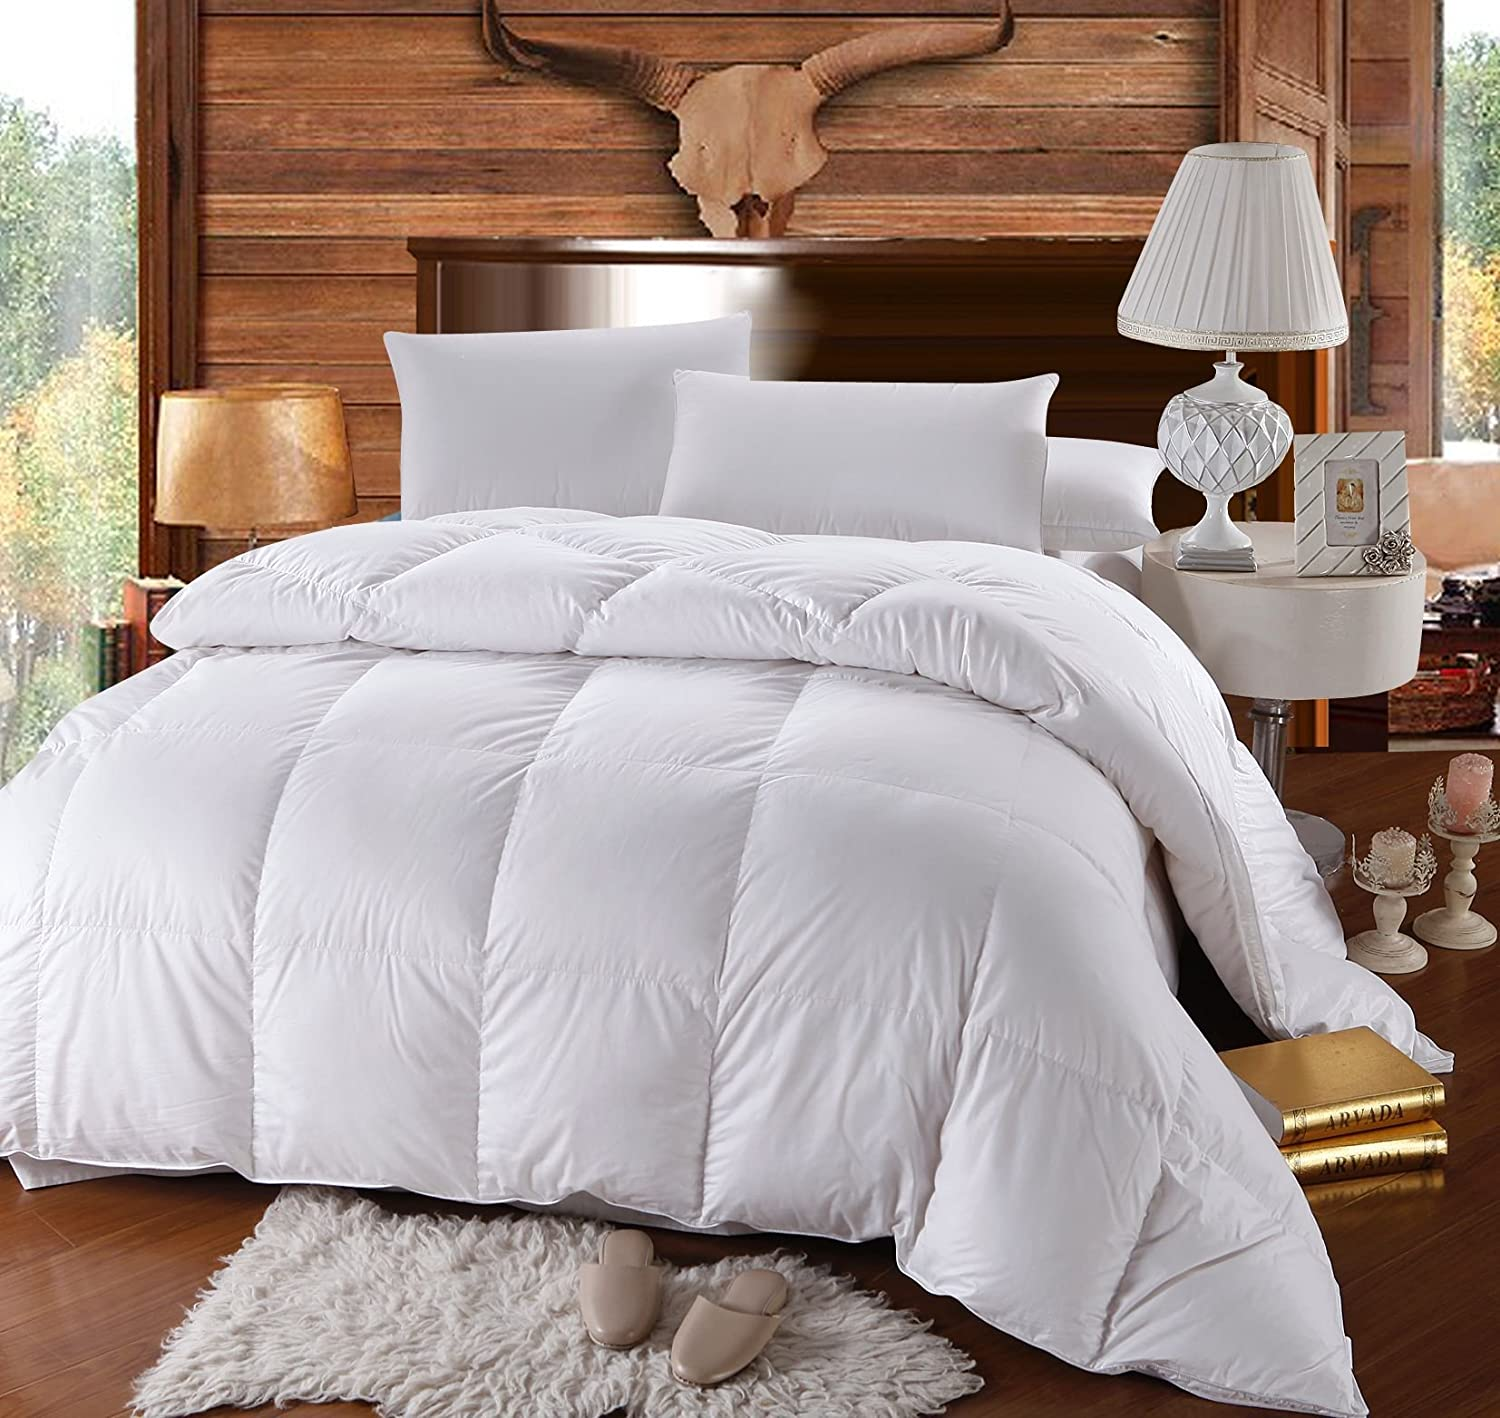 comfy best soft cheap thin set lightweight duvets top blanket store duvet alternative down reviews light comforter polo colored heavy of summer comforters feather size gray ocean insert flannel sale and for twin king full goose cover bedroom